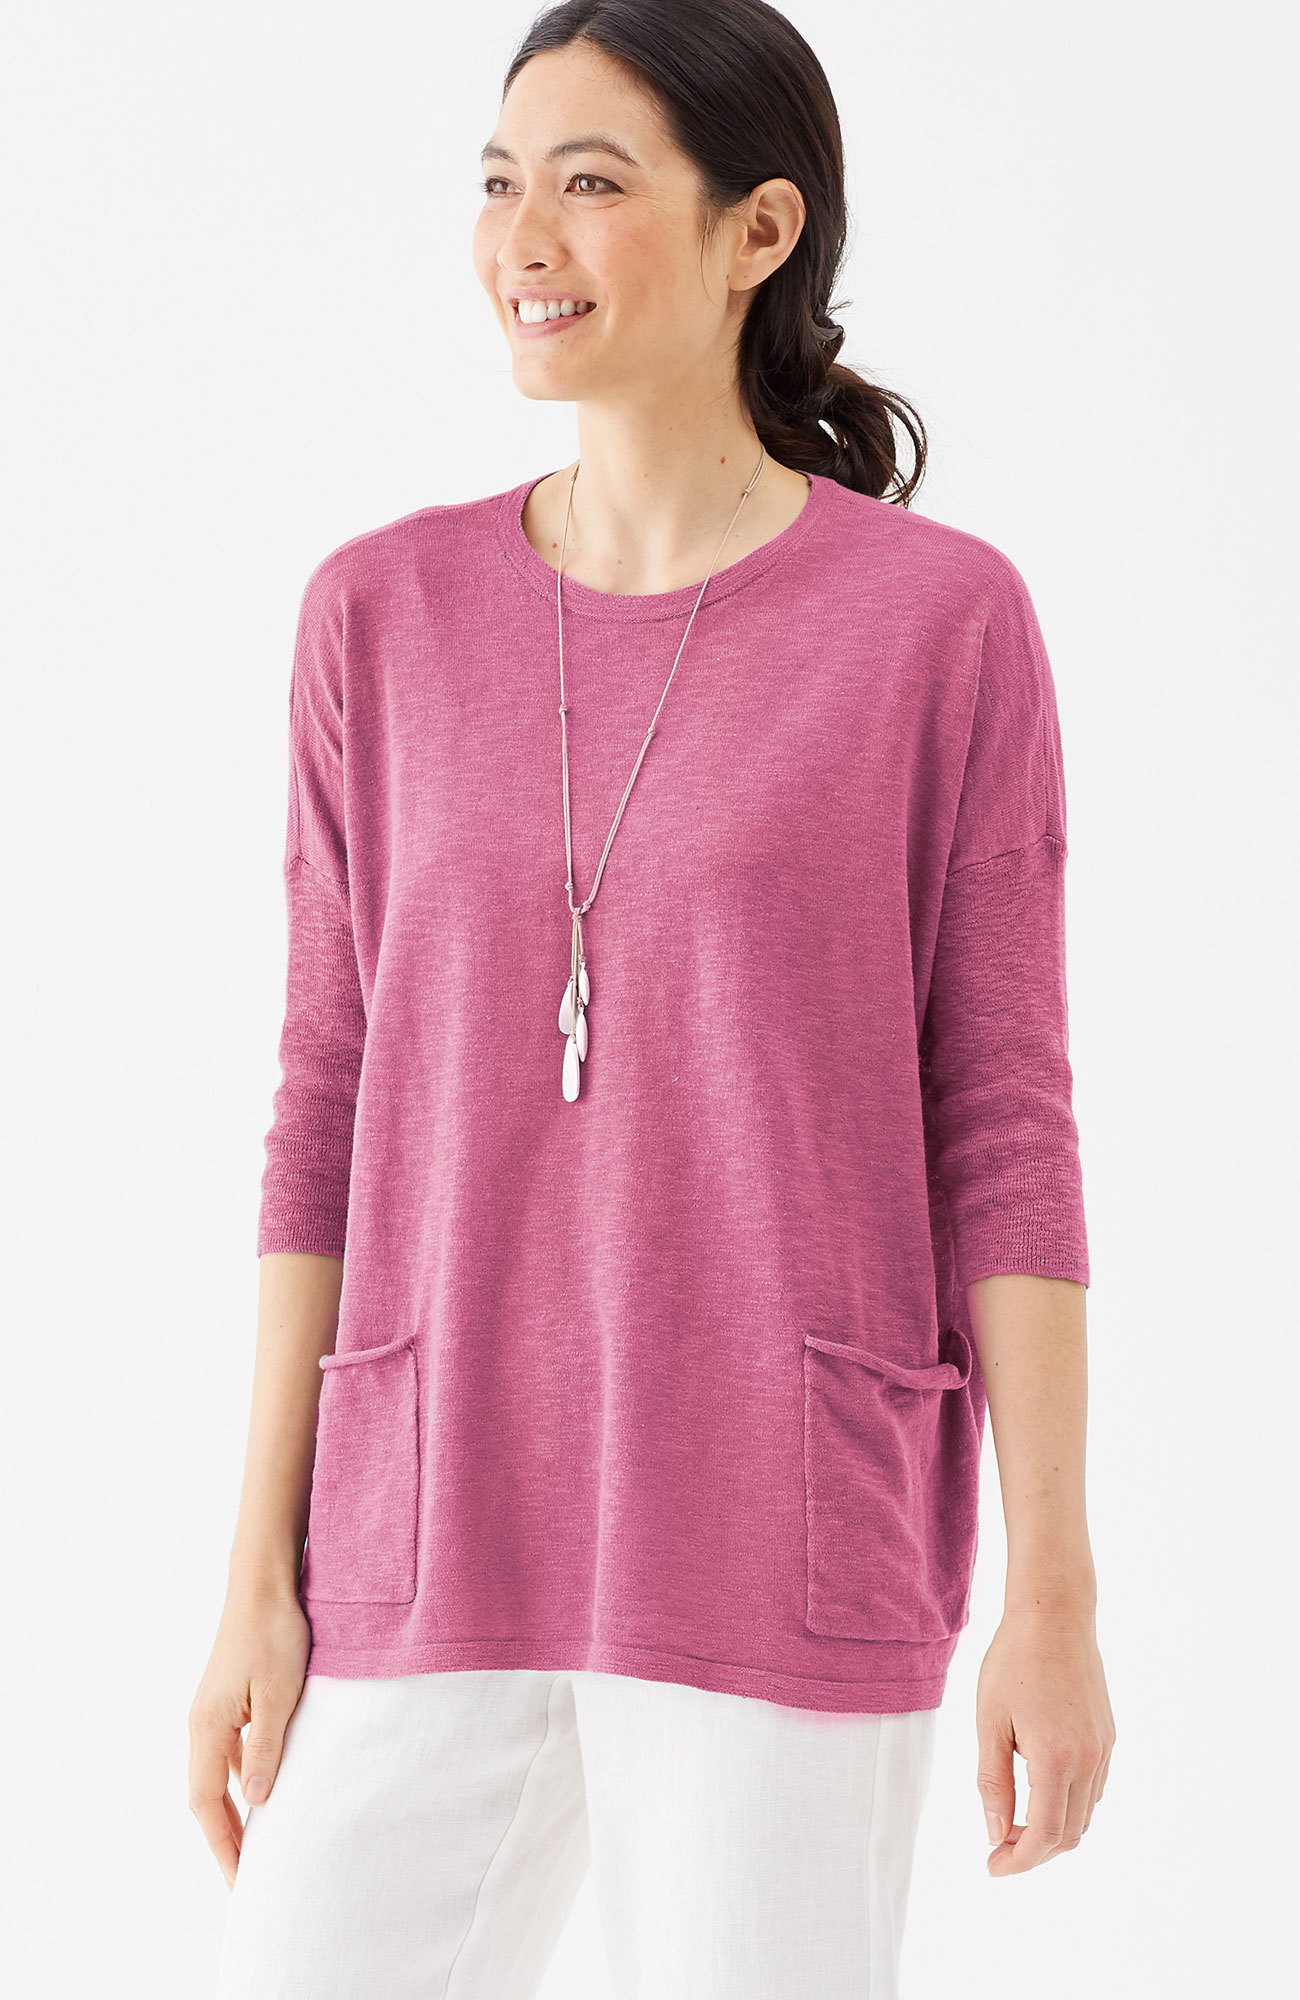 Pure Jill cotton & linen easy pullover